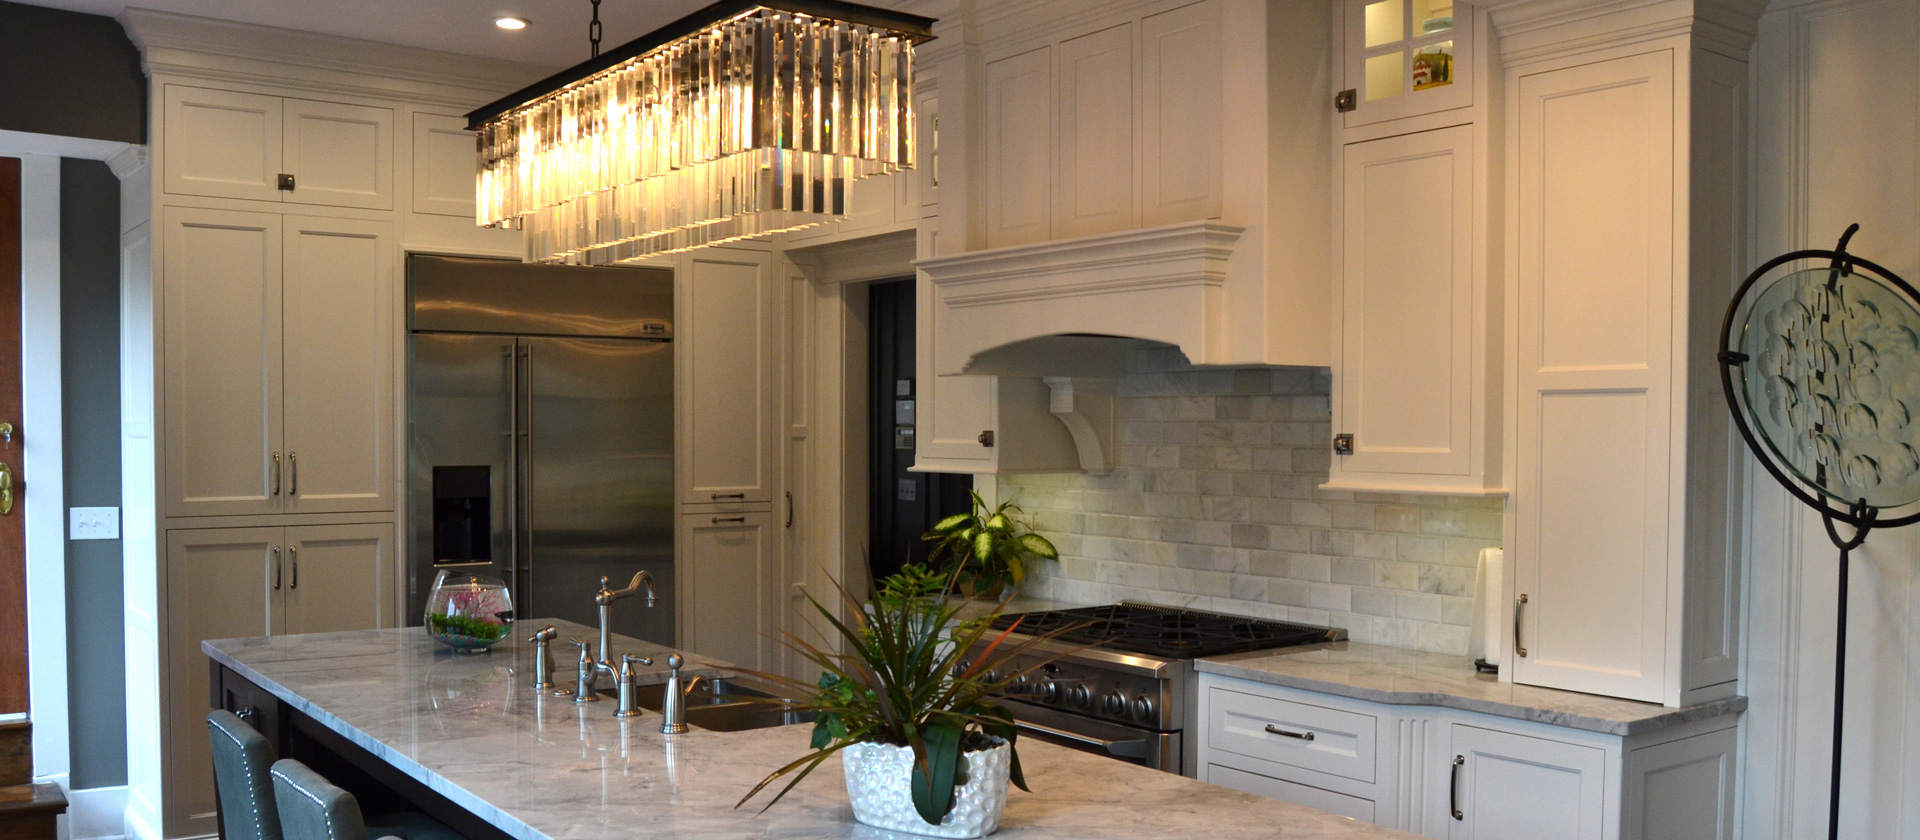 Designed Kitchens. welcome to our custom kitchen design  Custom Designed Kitchens and Bathrooms in Columbia MO